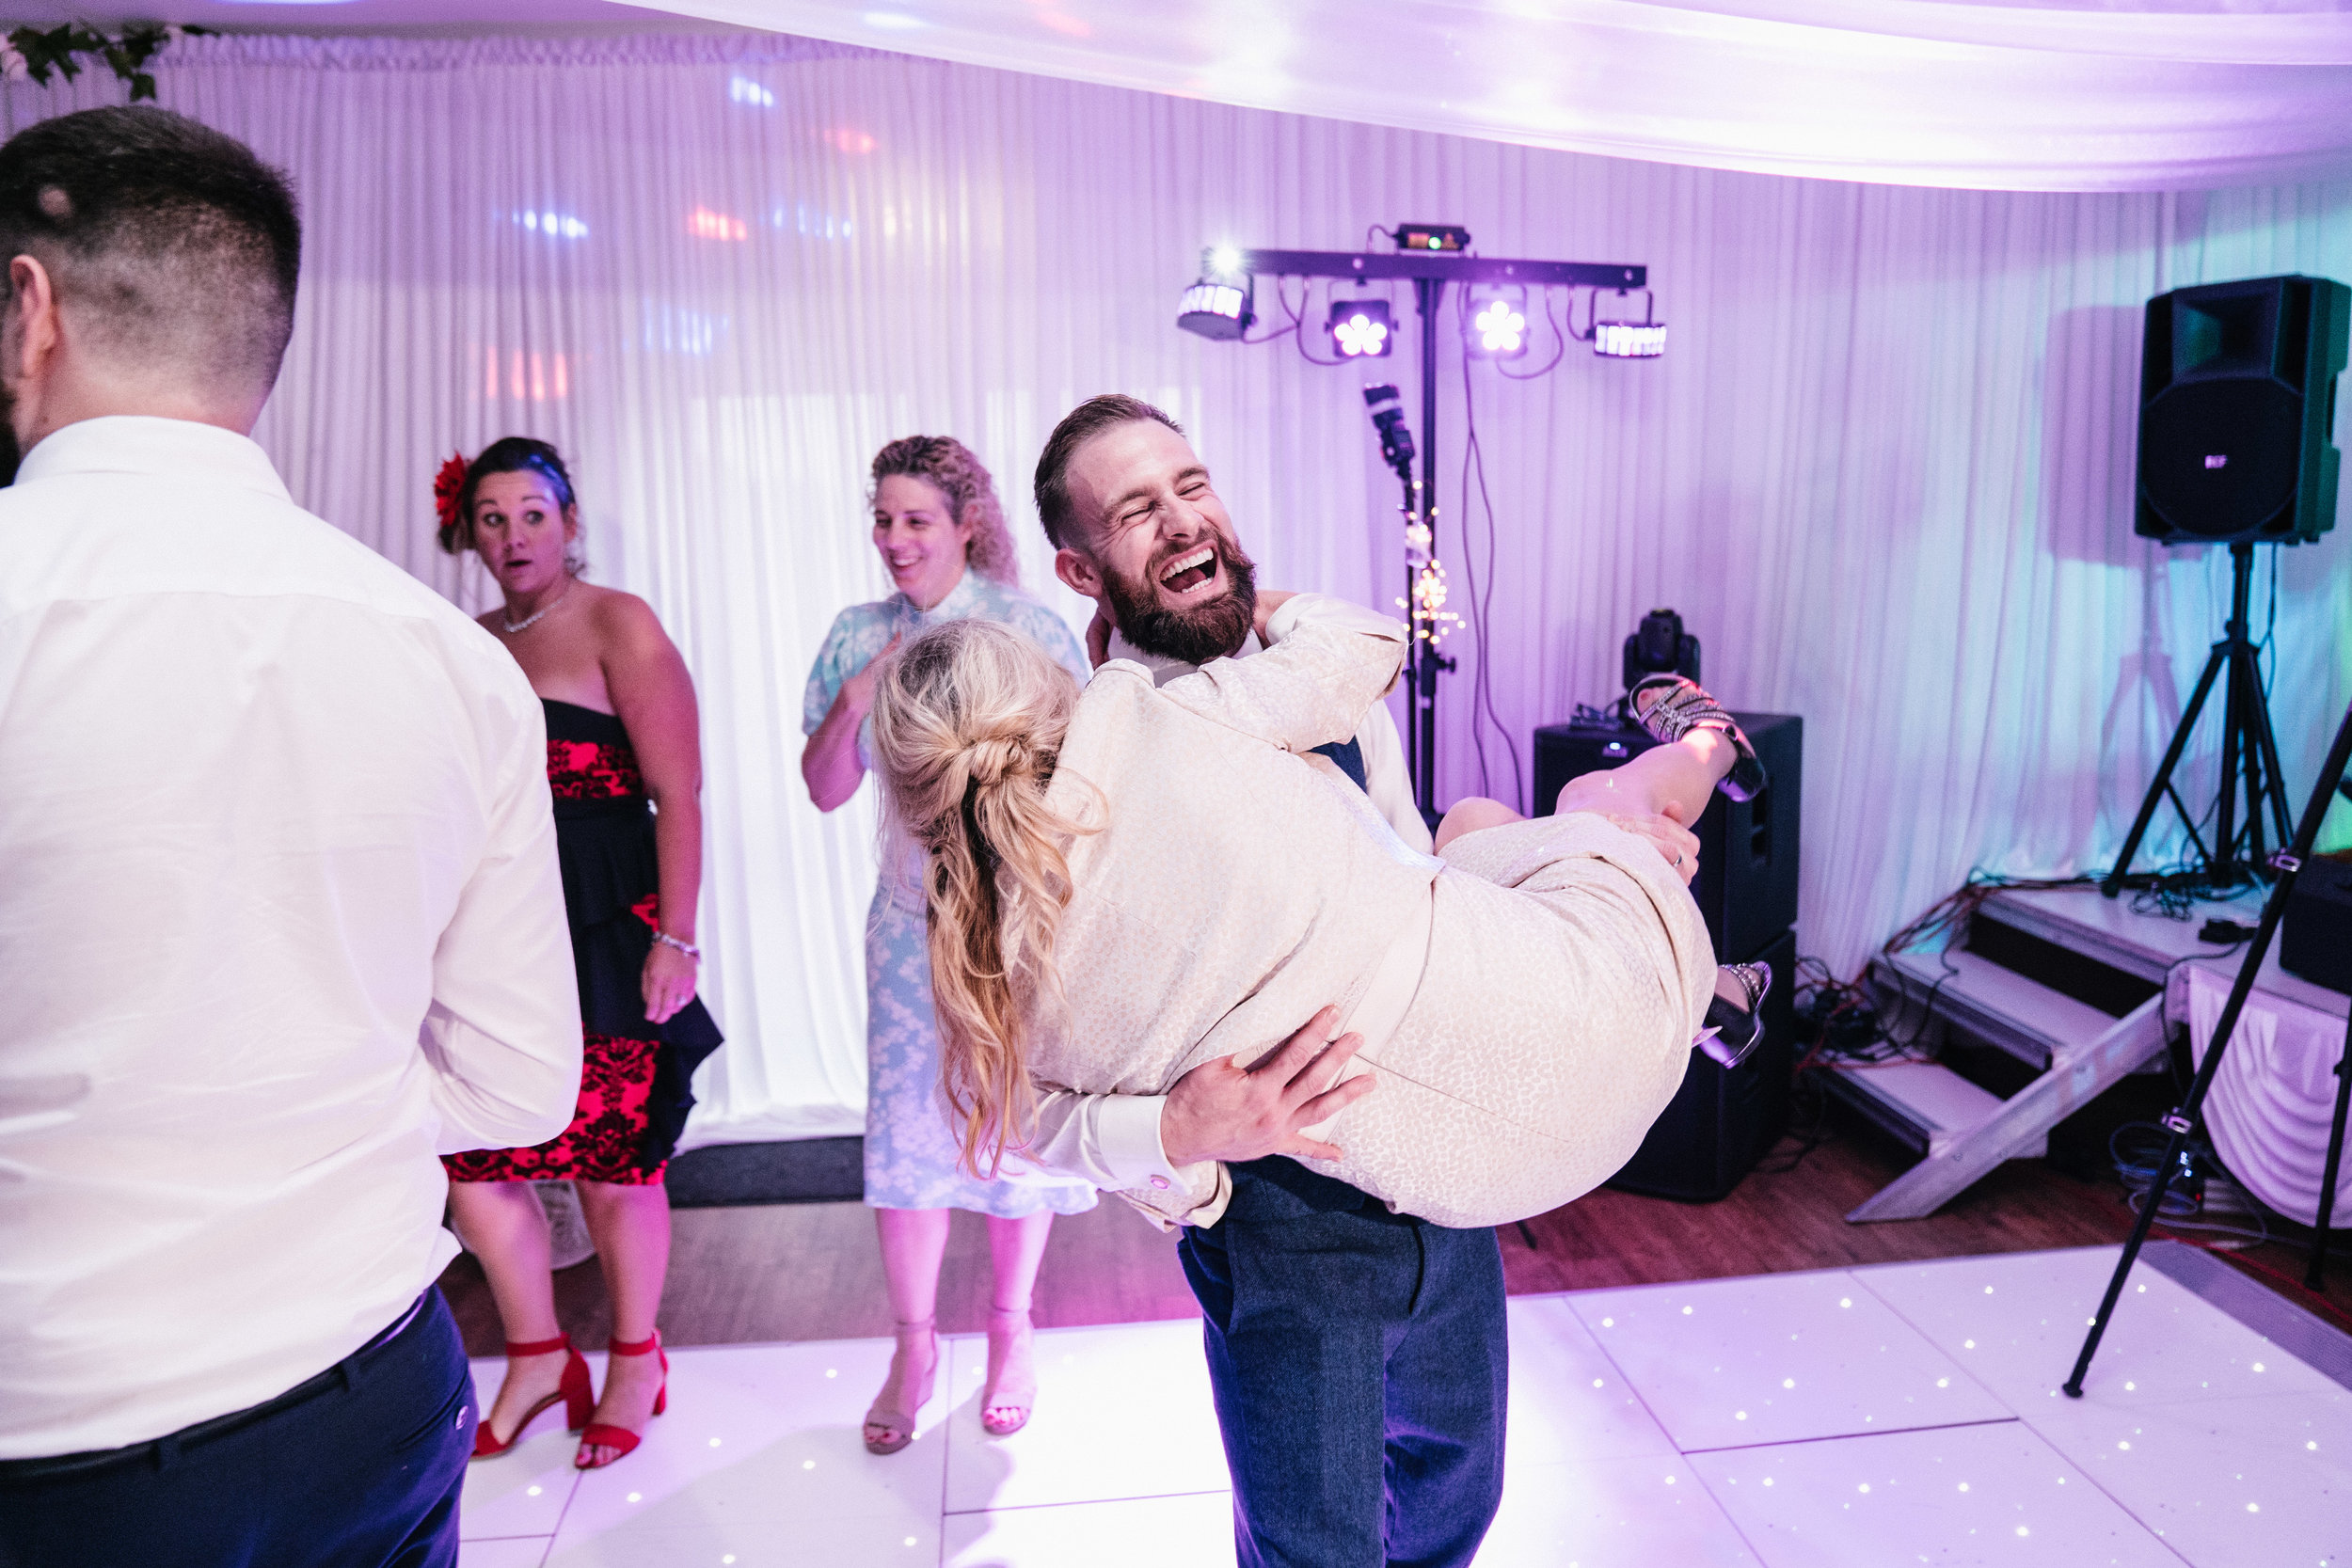 bedfordshire-london-wedding-photographer-videographer-73